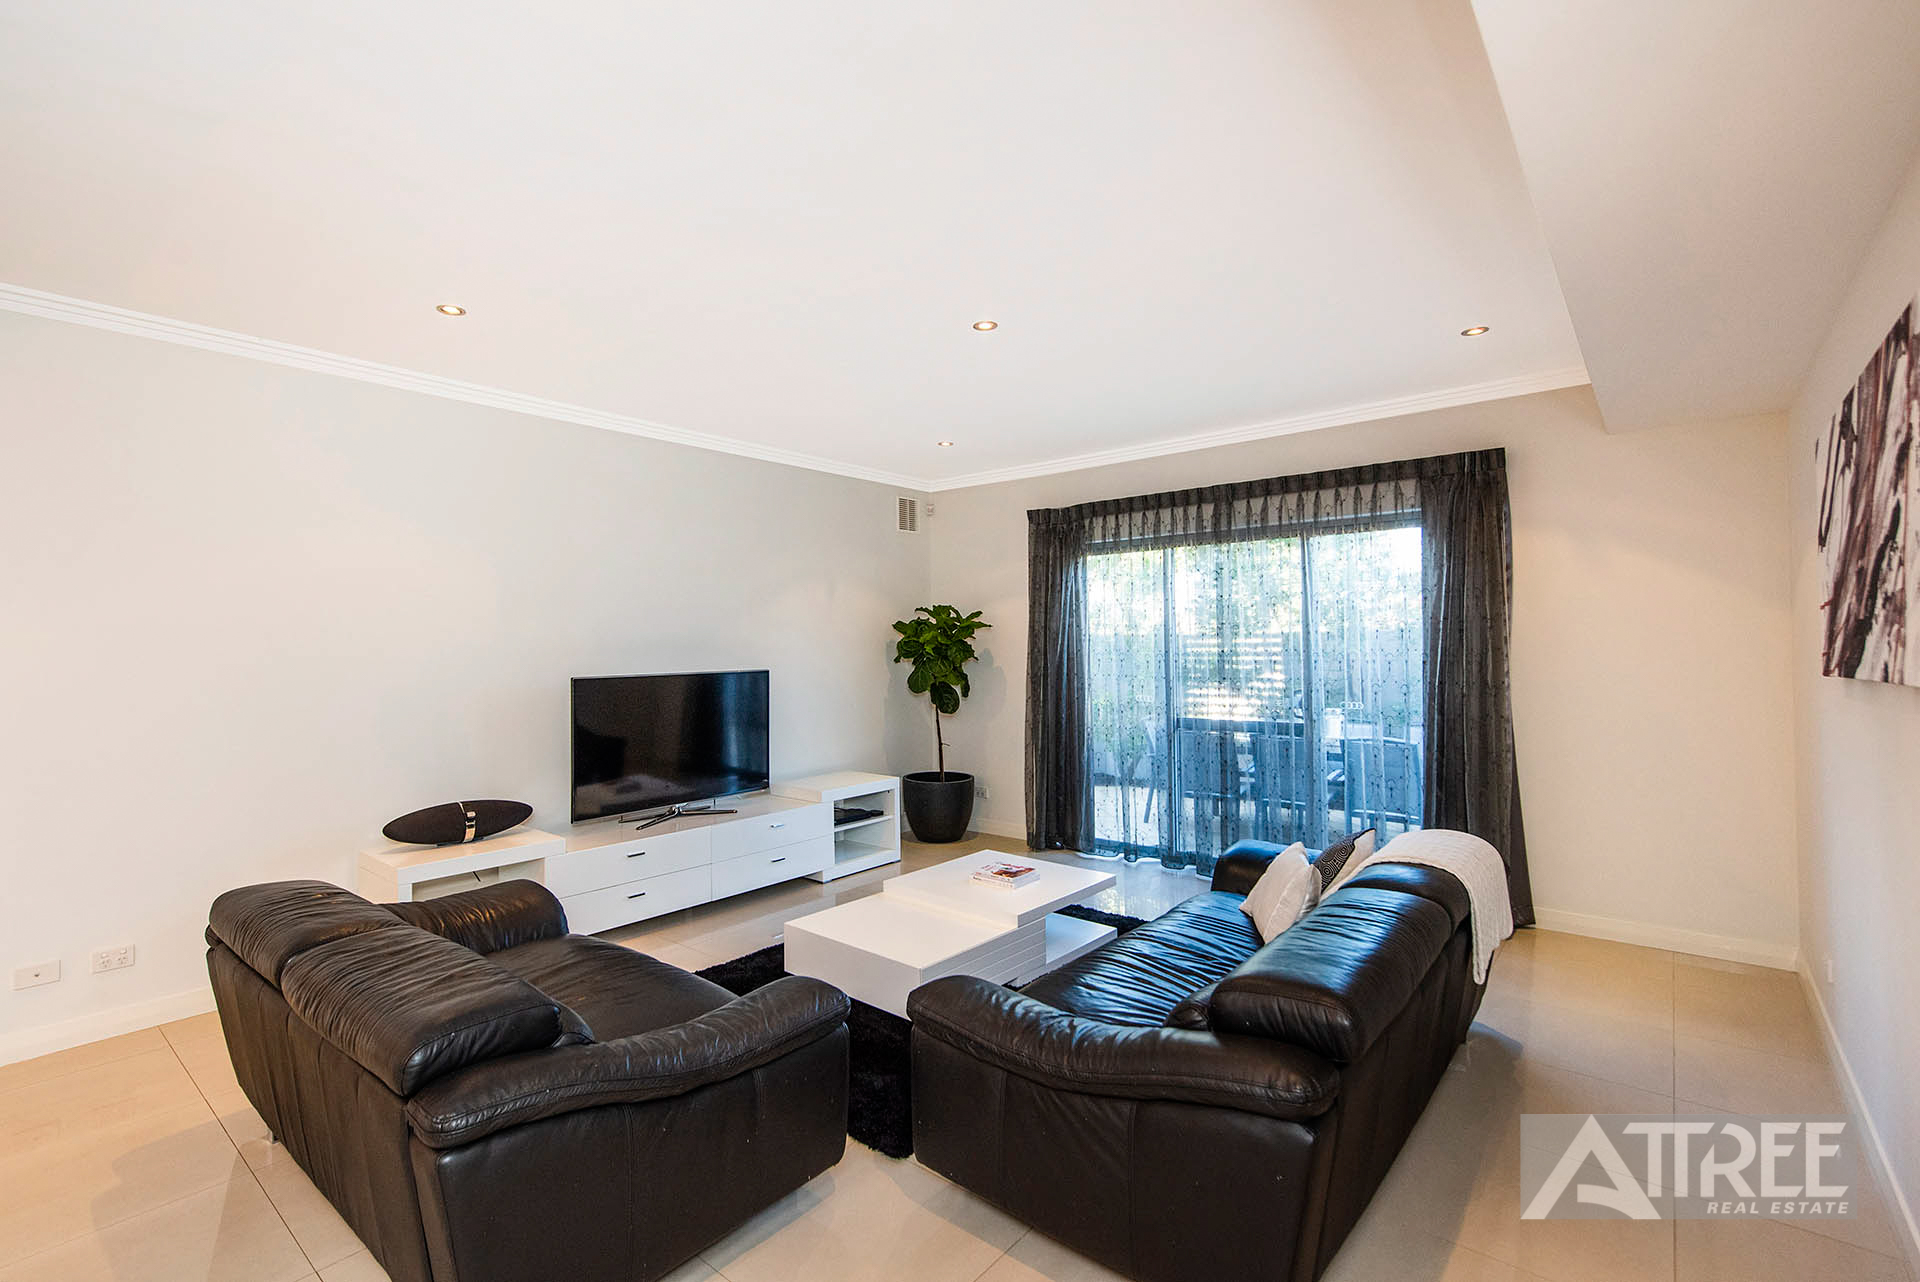 Property for sale in ARDROSS, 15A Bombard Street : Attree Real Estate